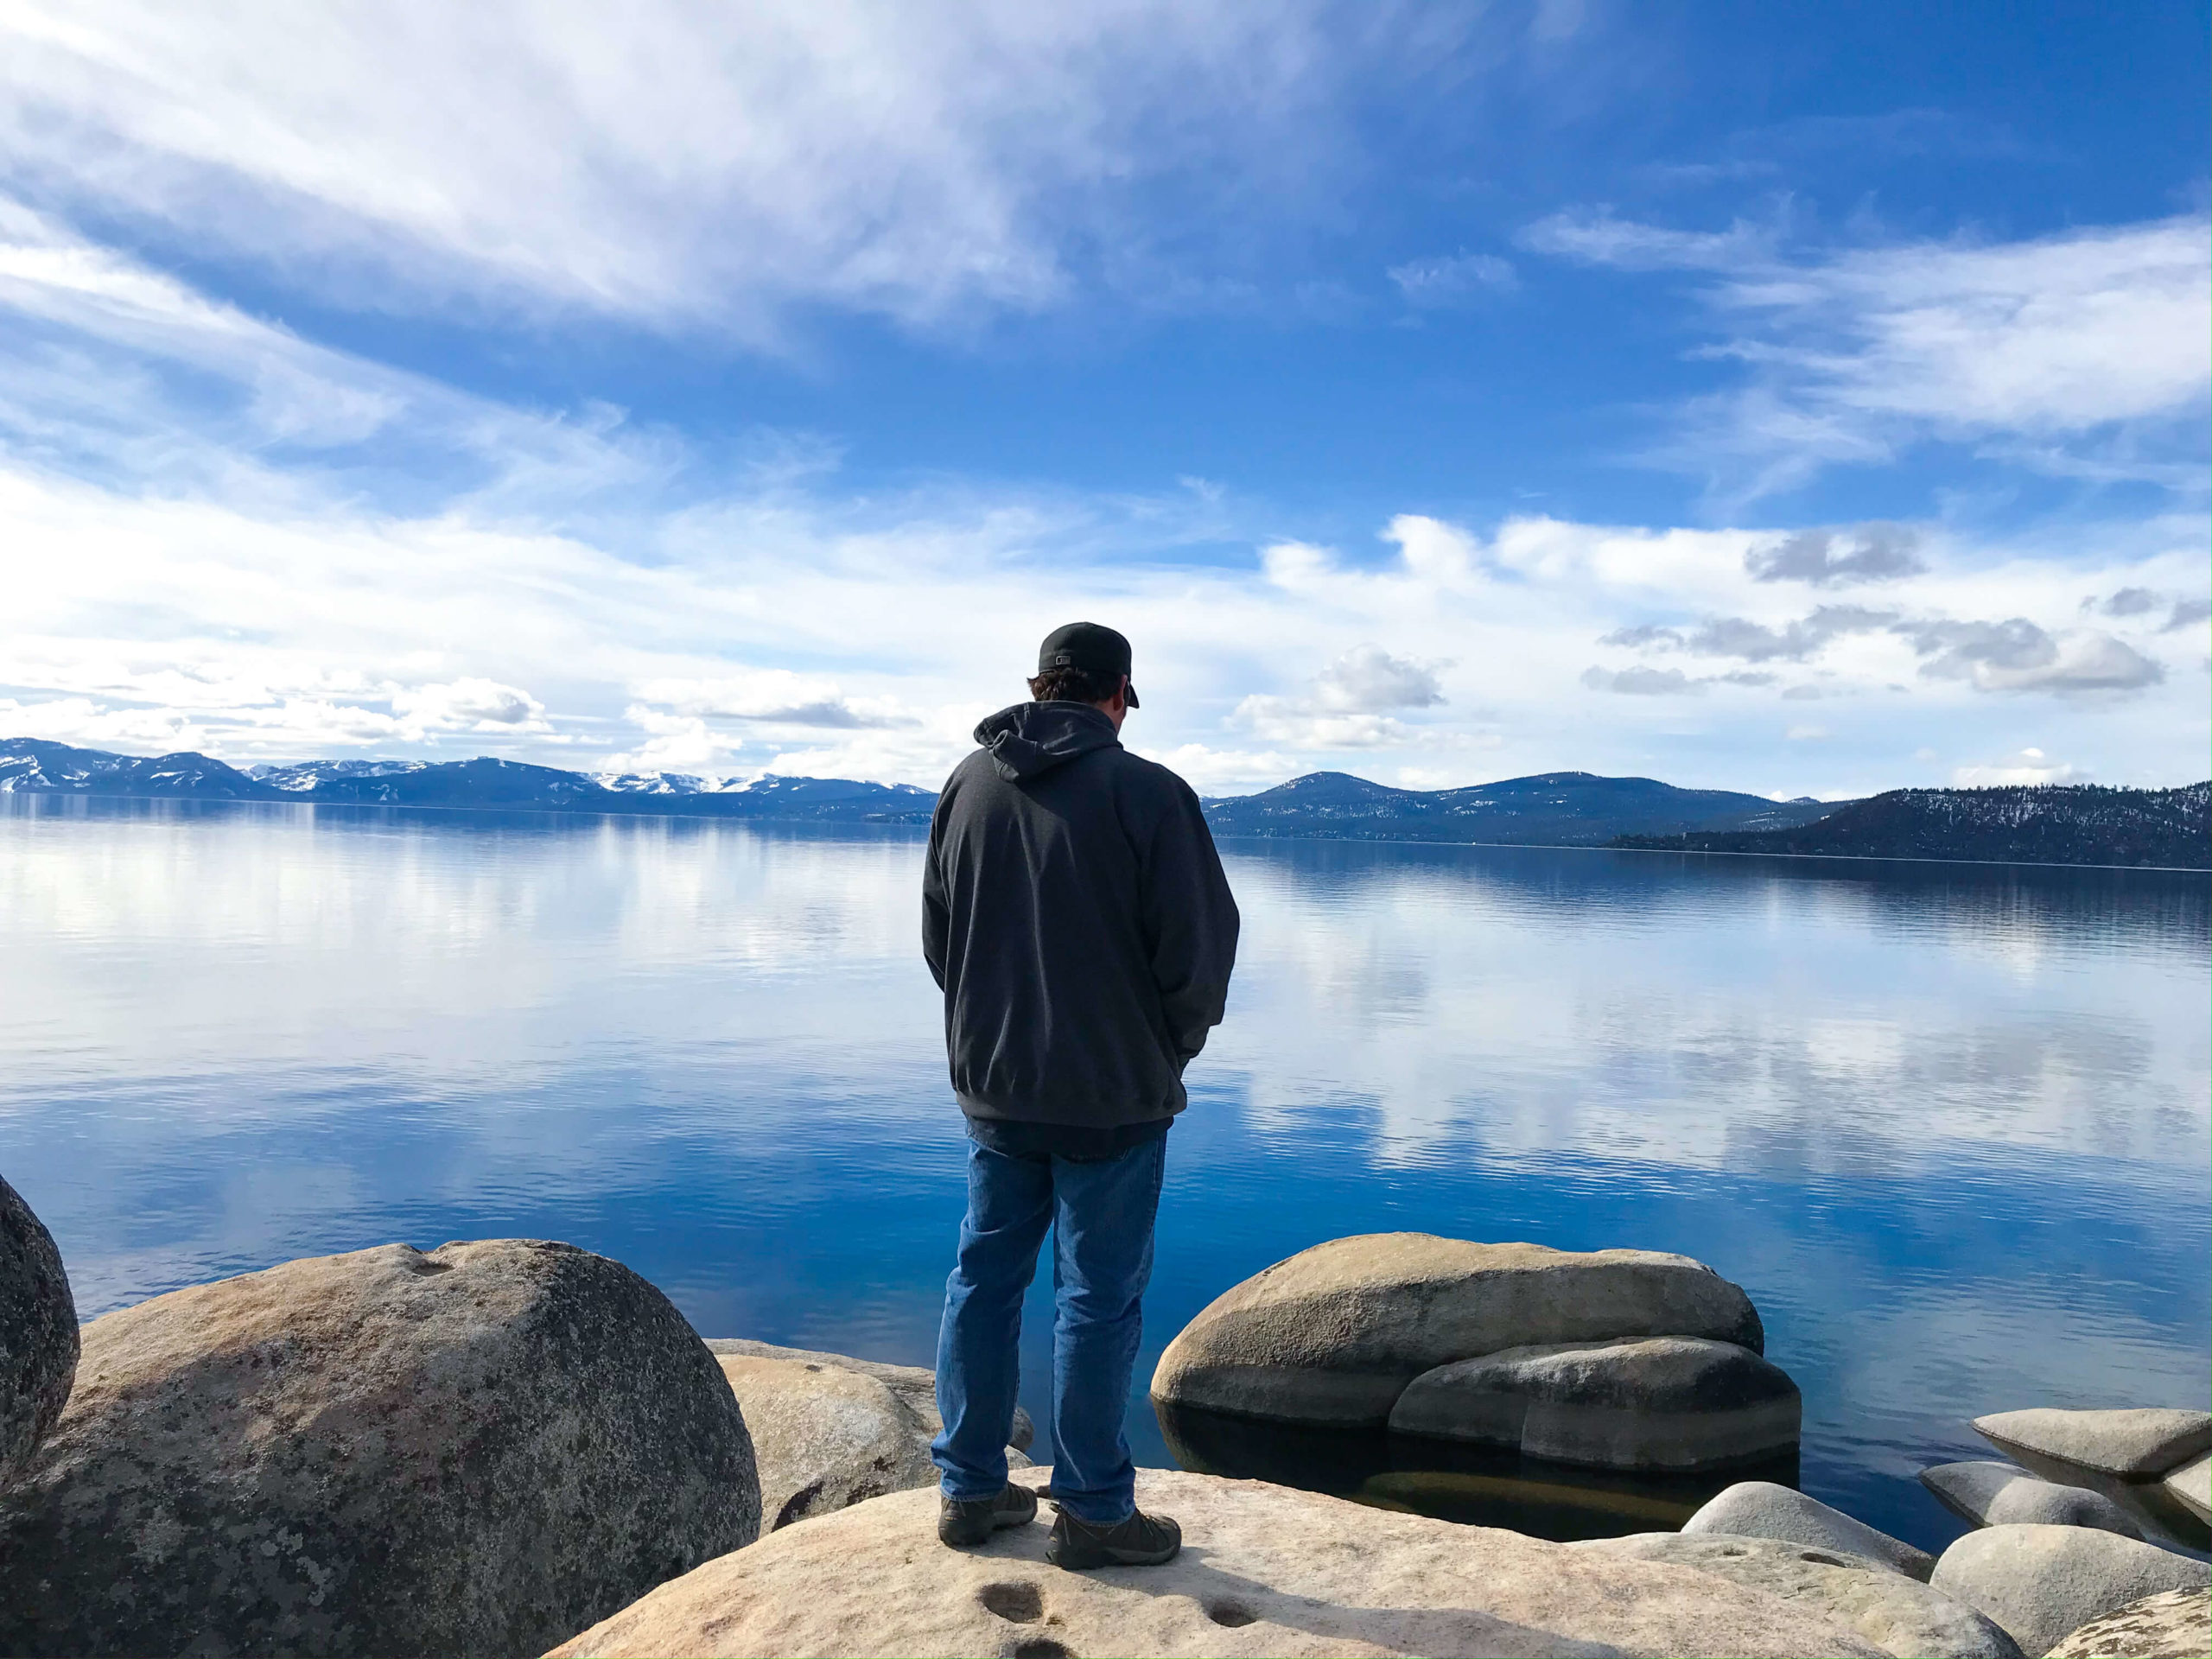 A man standing on a rock in front of Lake Tahoe.